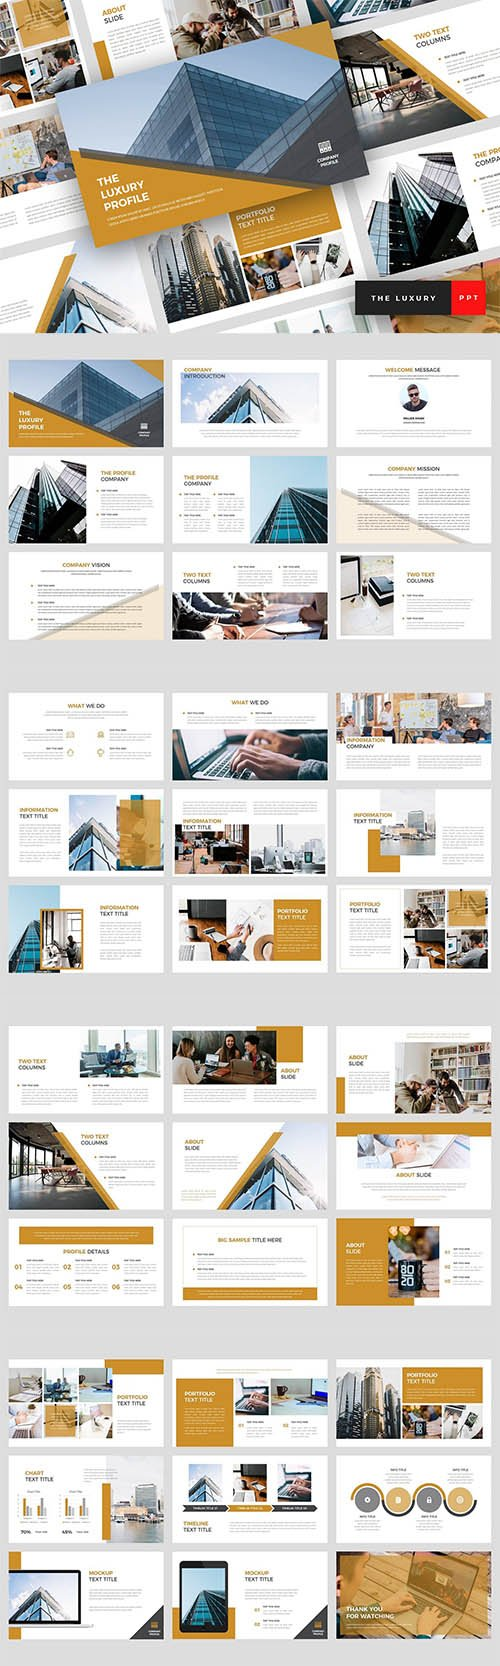 The Luxury - Pitch Deck Powerpoint, Keynote and Google Slides Templates